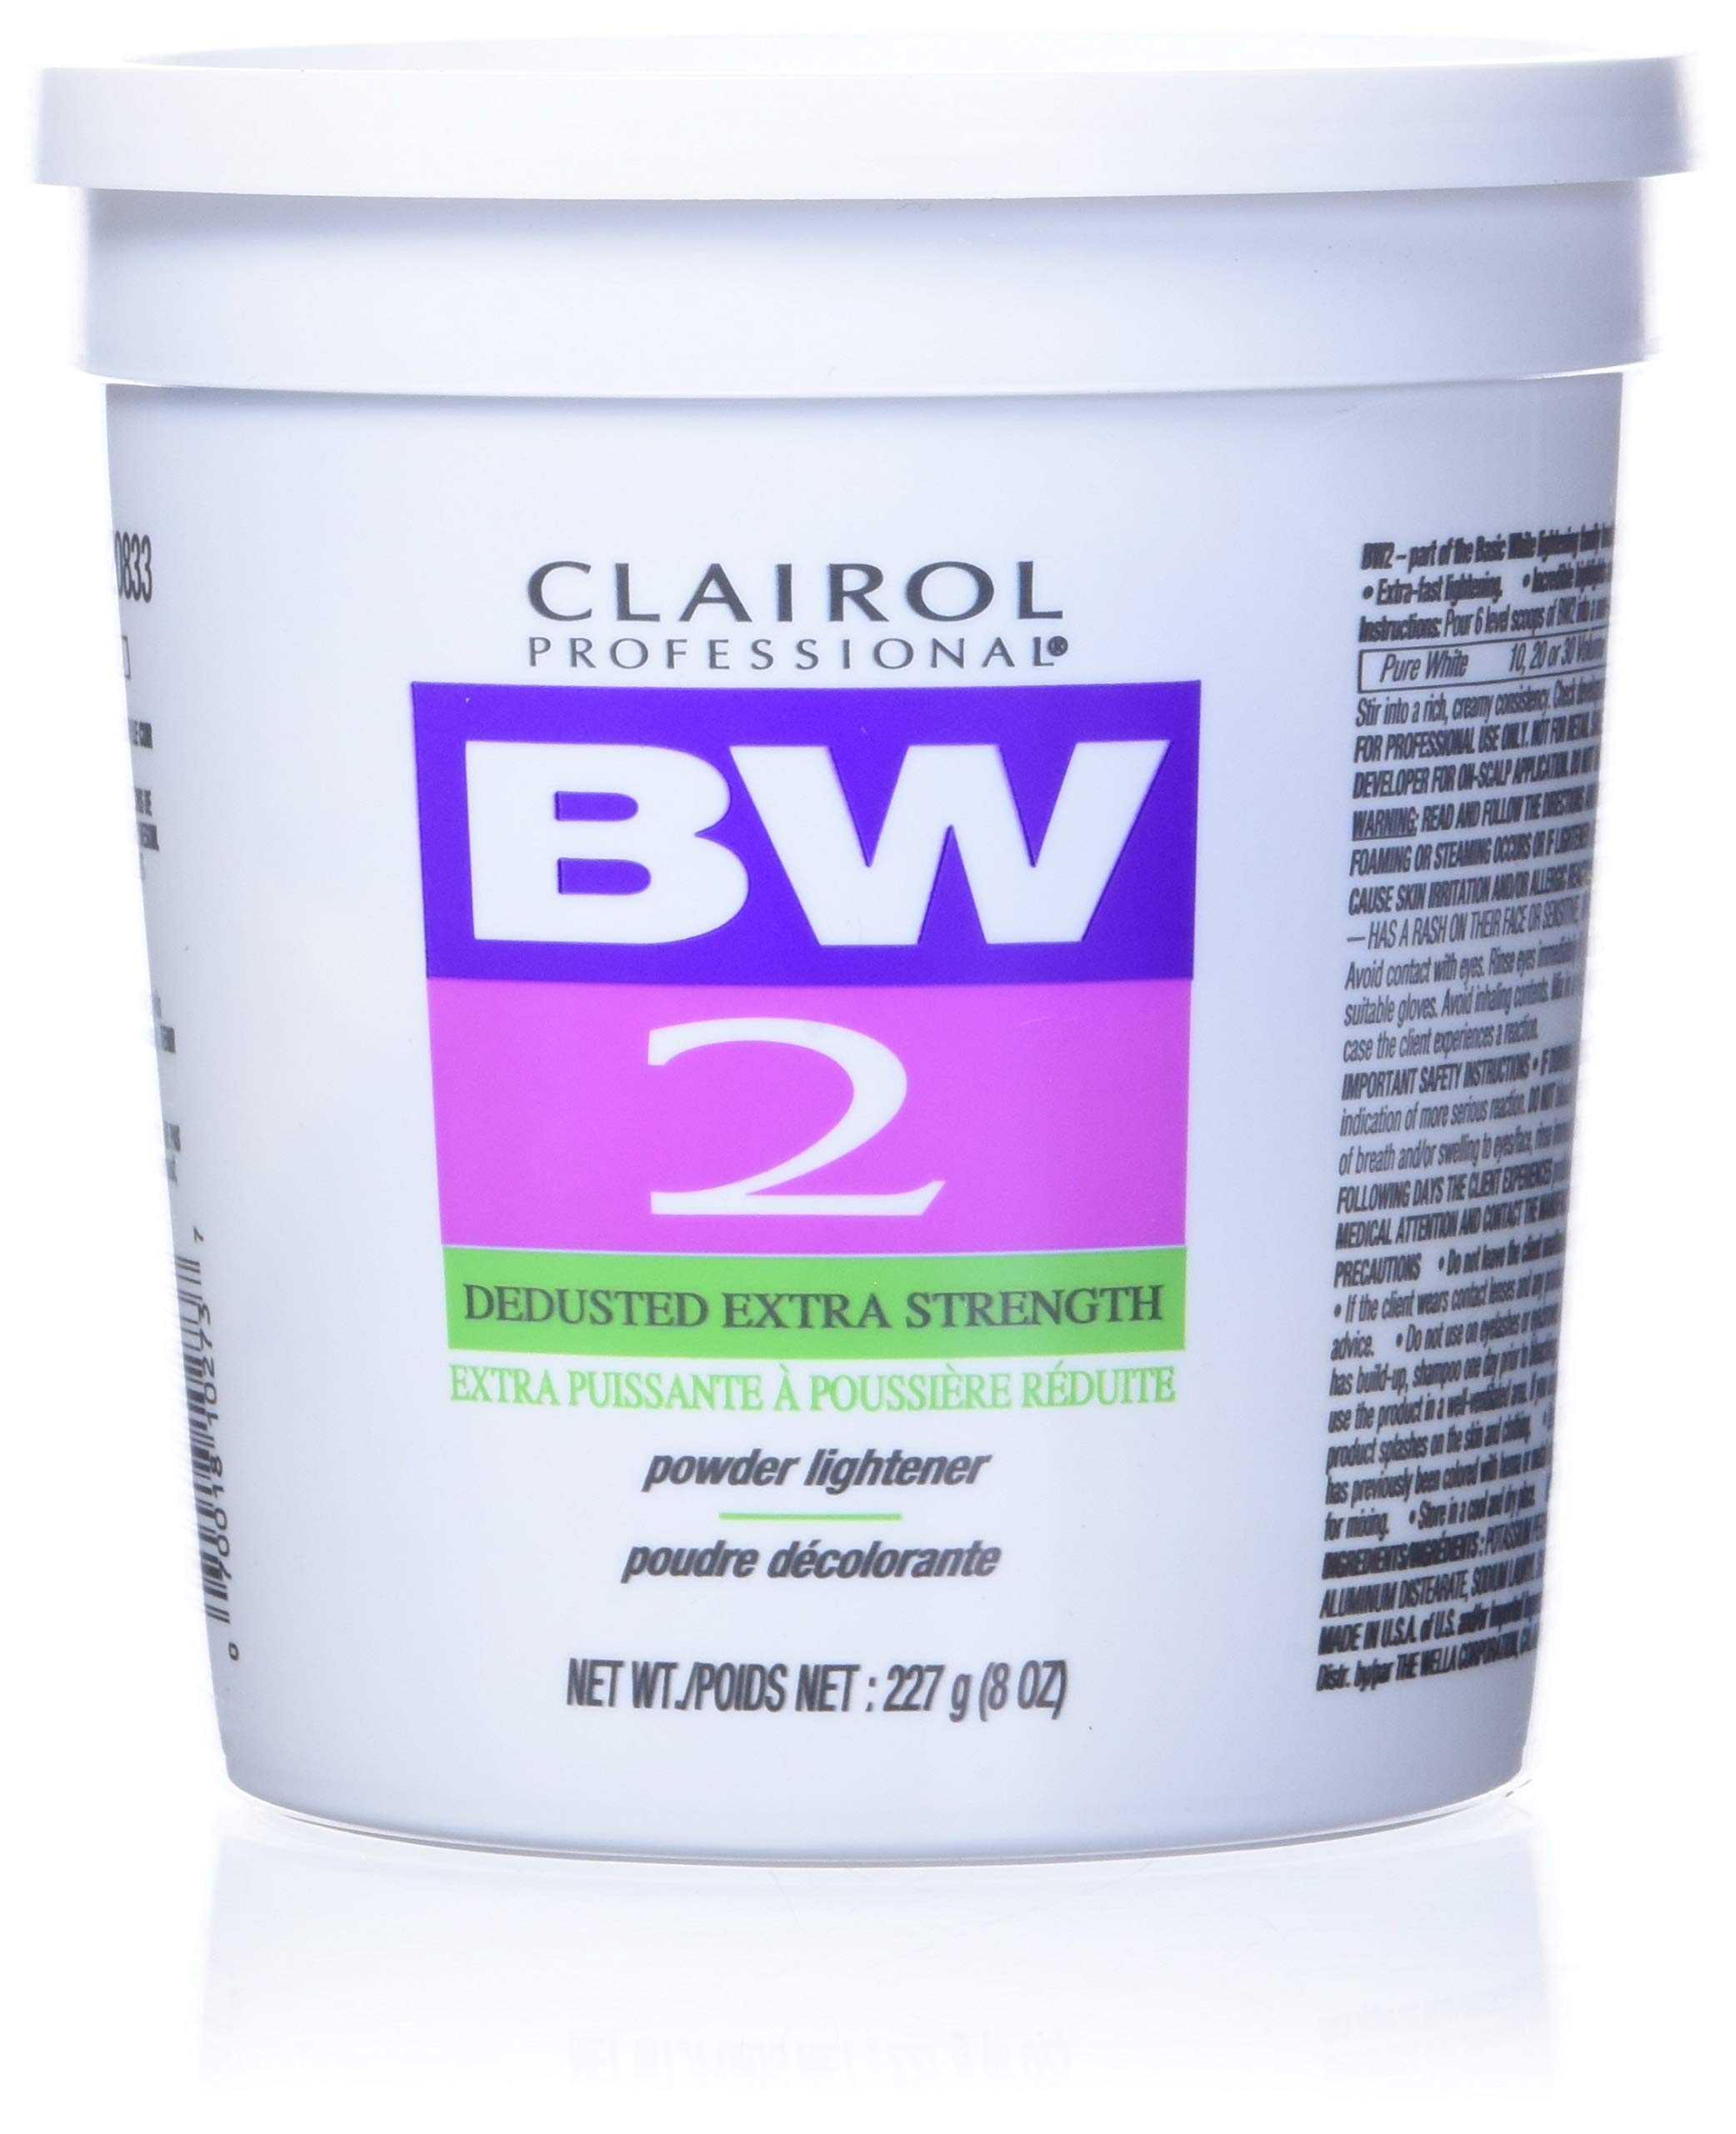 Clairol Professional BW2 Hair Powder Lightener - for Hair Lightening